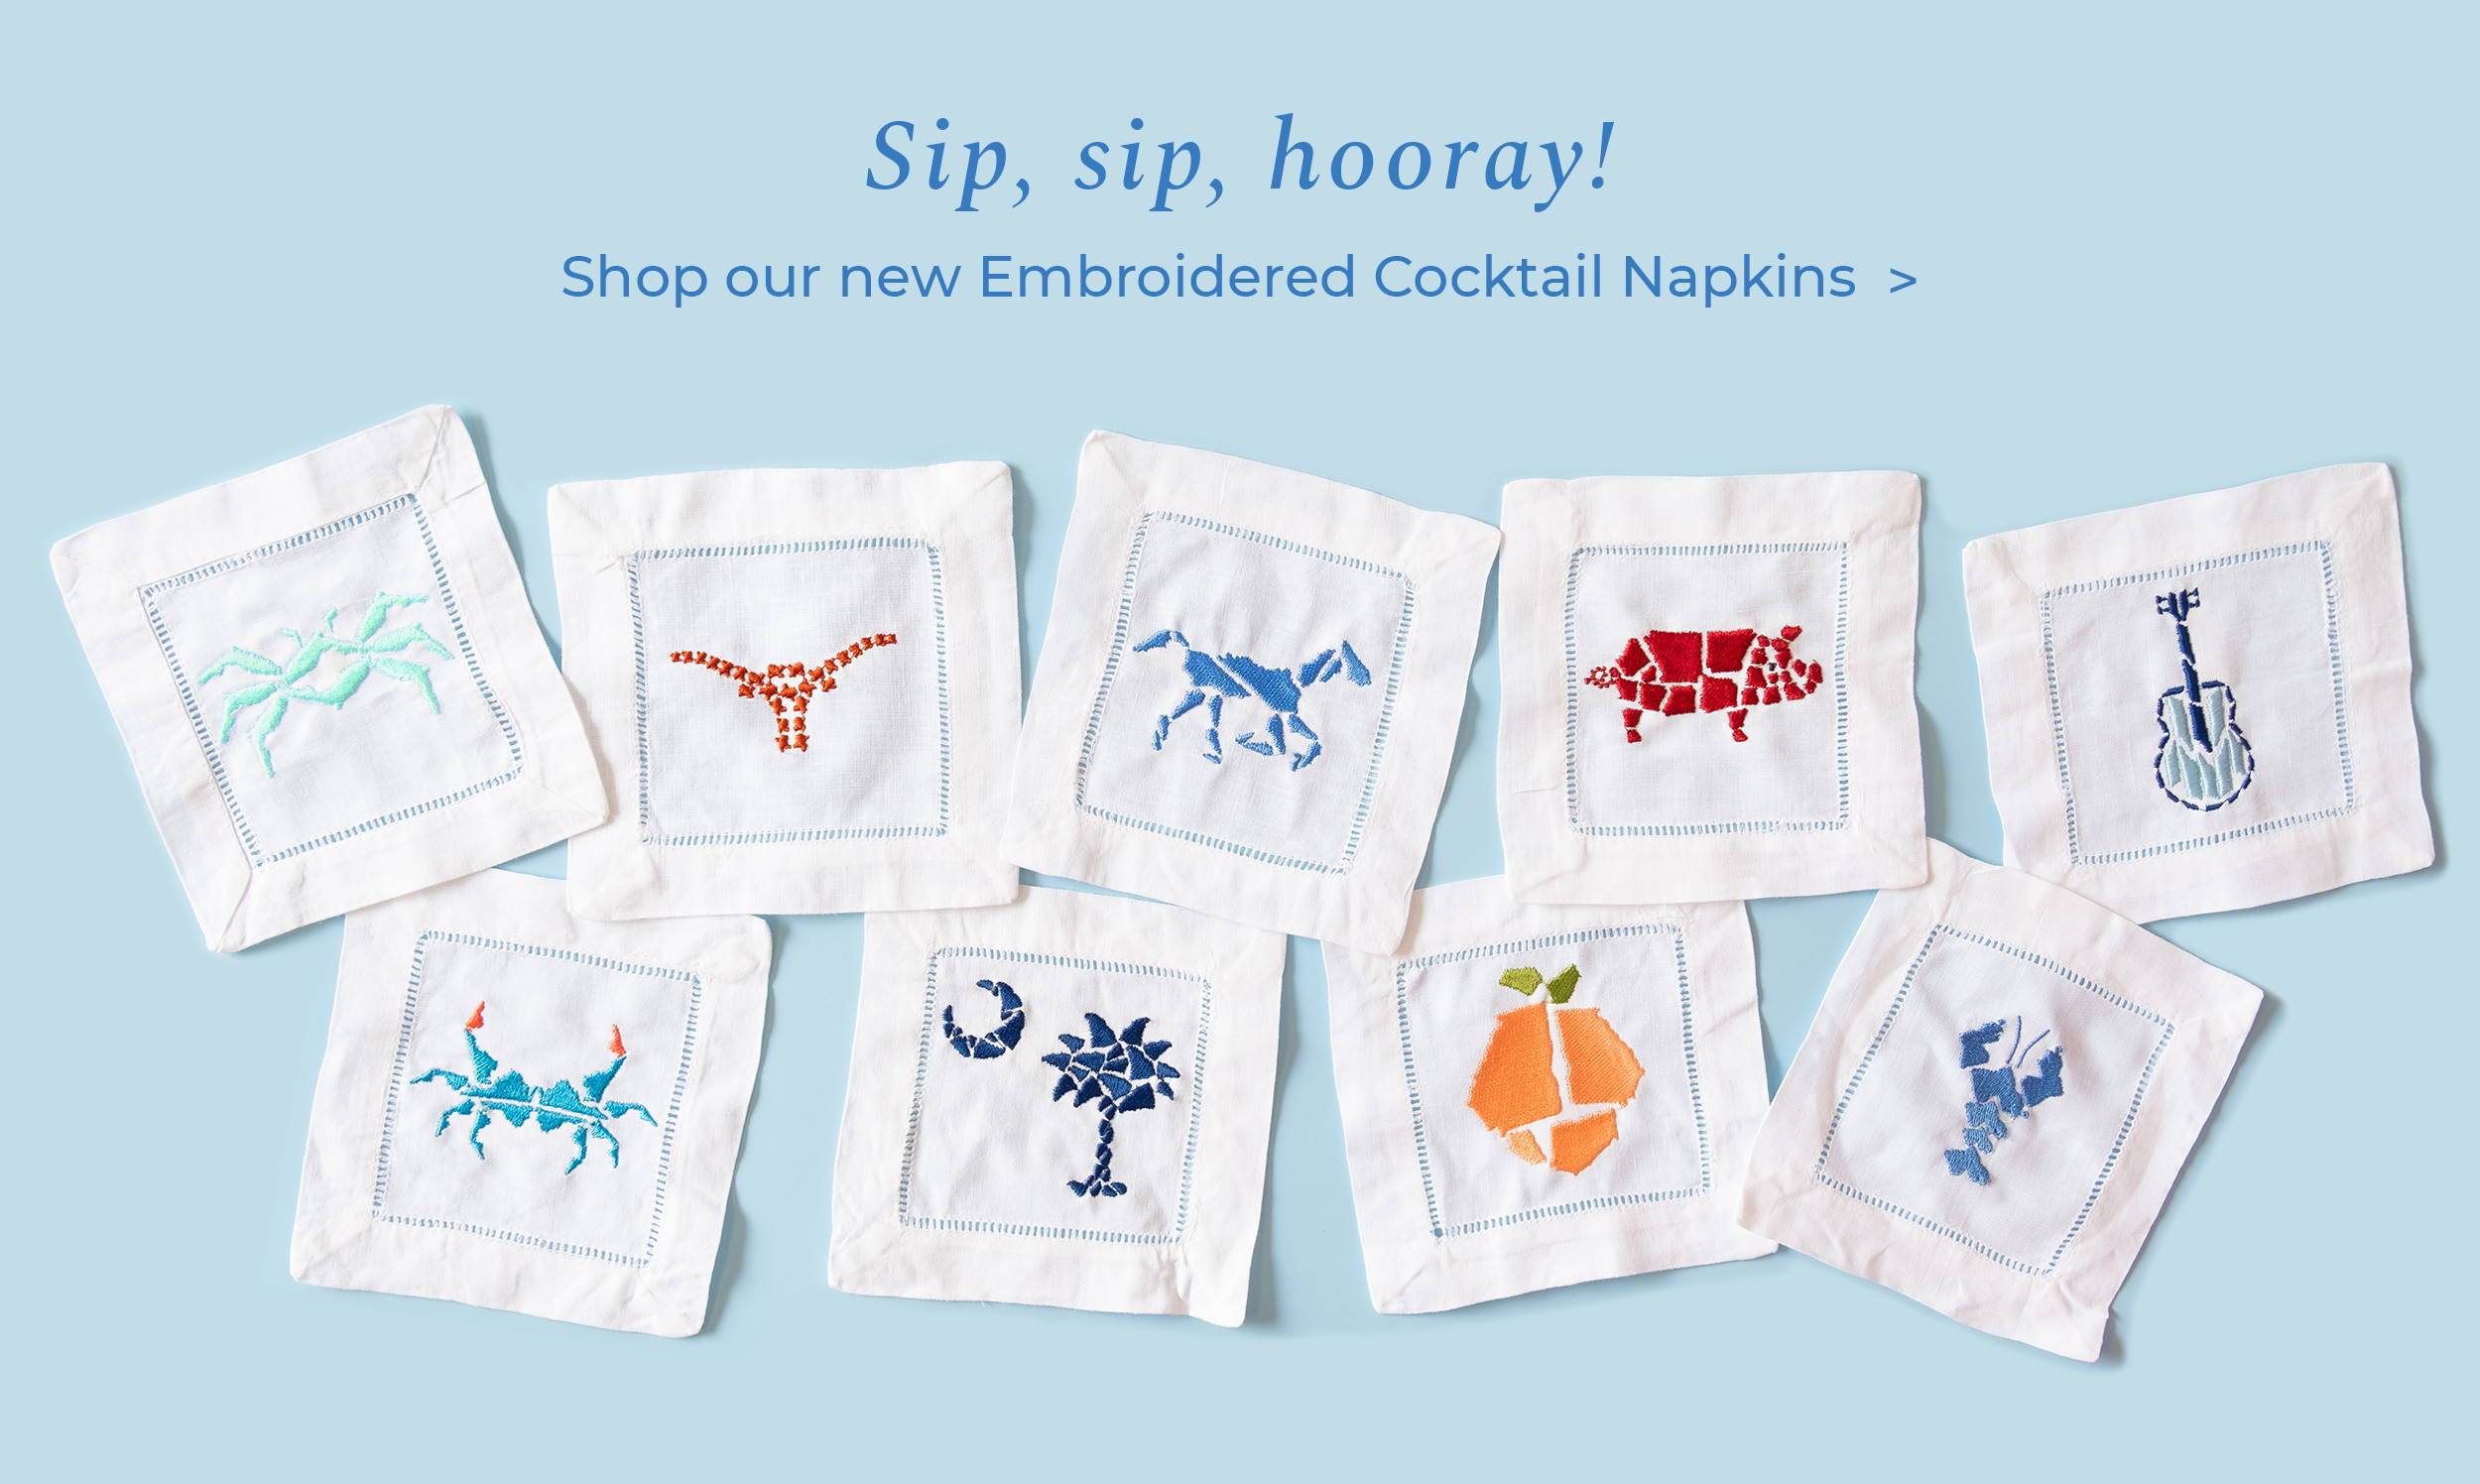 New Embroidered Cocktail Napkins!